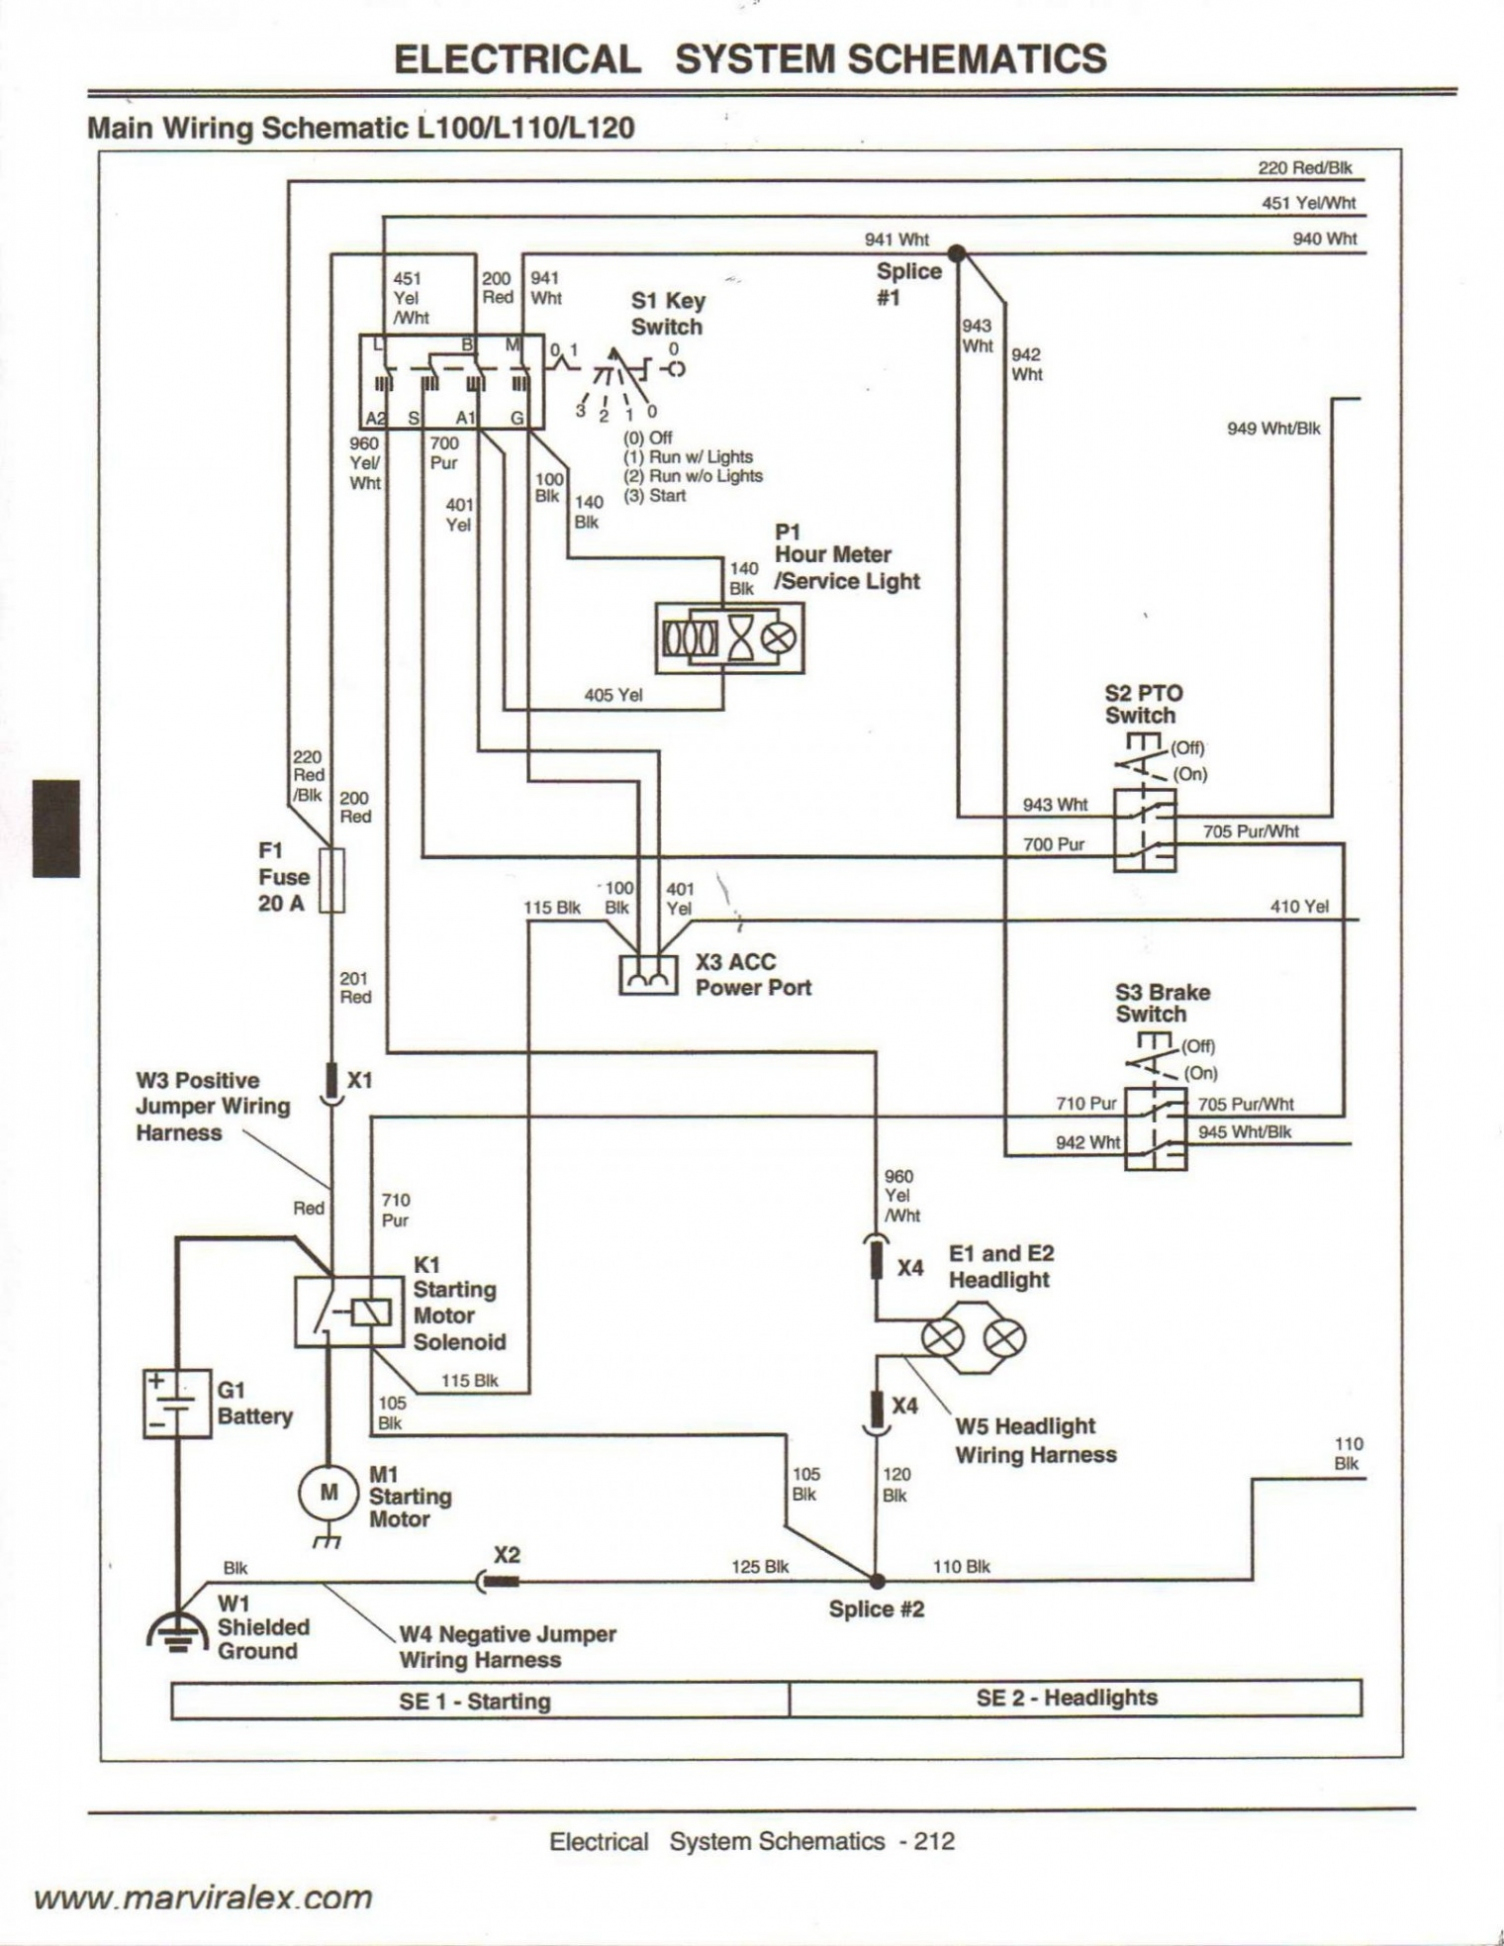 [GJFJ_338]  DIAGRAM] John Deere 630 Wiring Diagrams FULL Version HD Quality Wiring  Diagrams - BOMBDIAGRAM.GENAZZANOBUONCONSIGLIO.IT | John Deere F910 Wiring Diagram |  | bombdiagram.genazzanobuonconsiglio.it